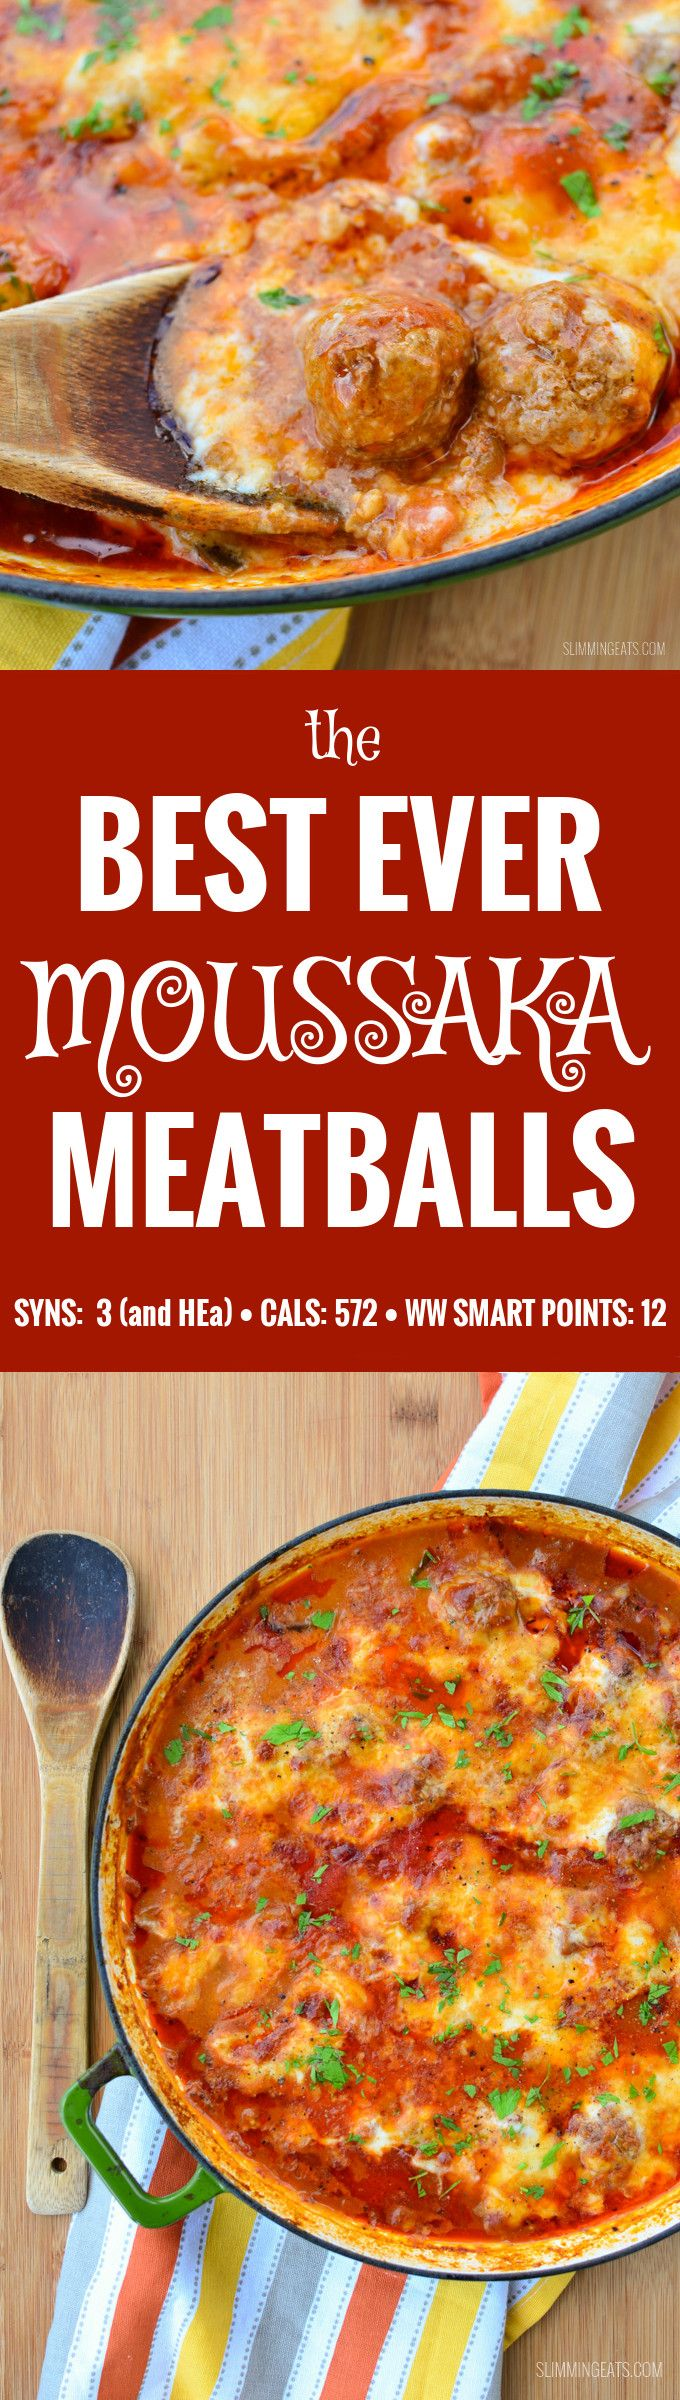 Slimming Eats Moussaka Meatballs - gluten free, Slimming World (SP) and Weight Watchers friendly